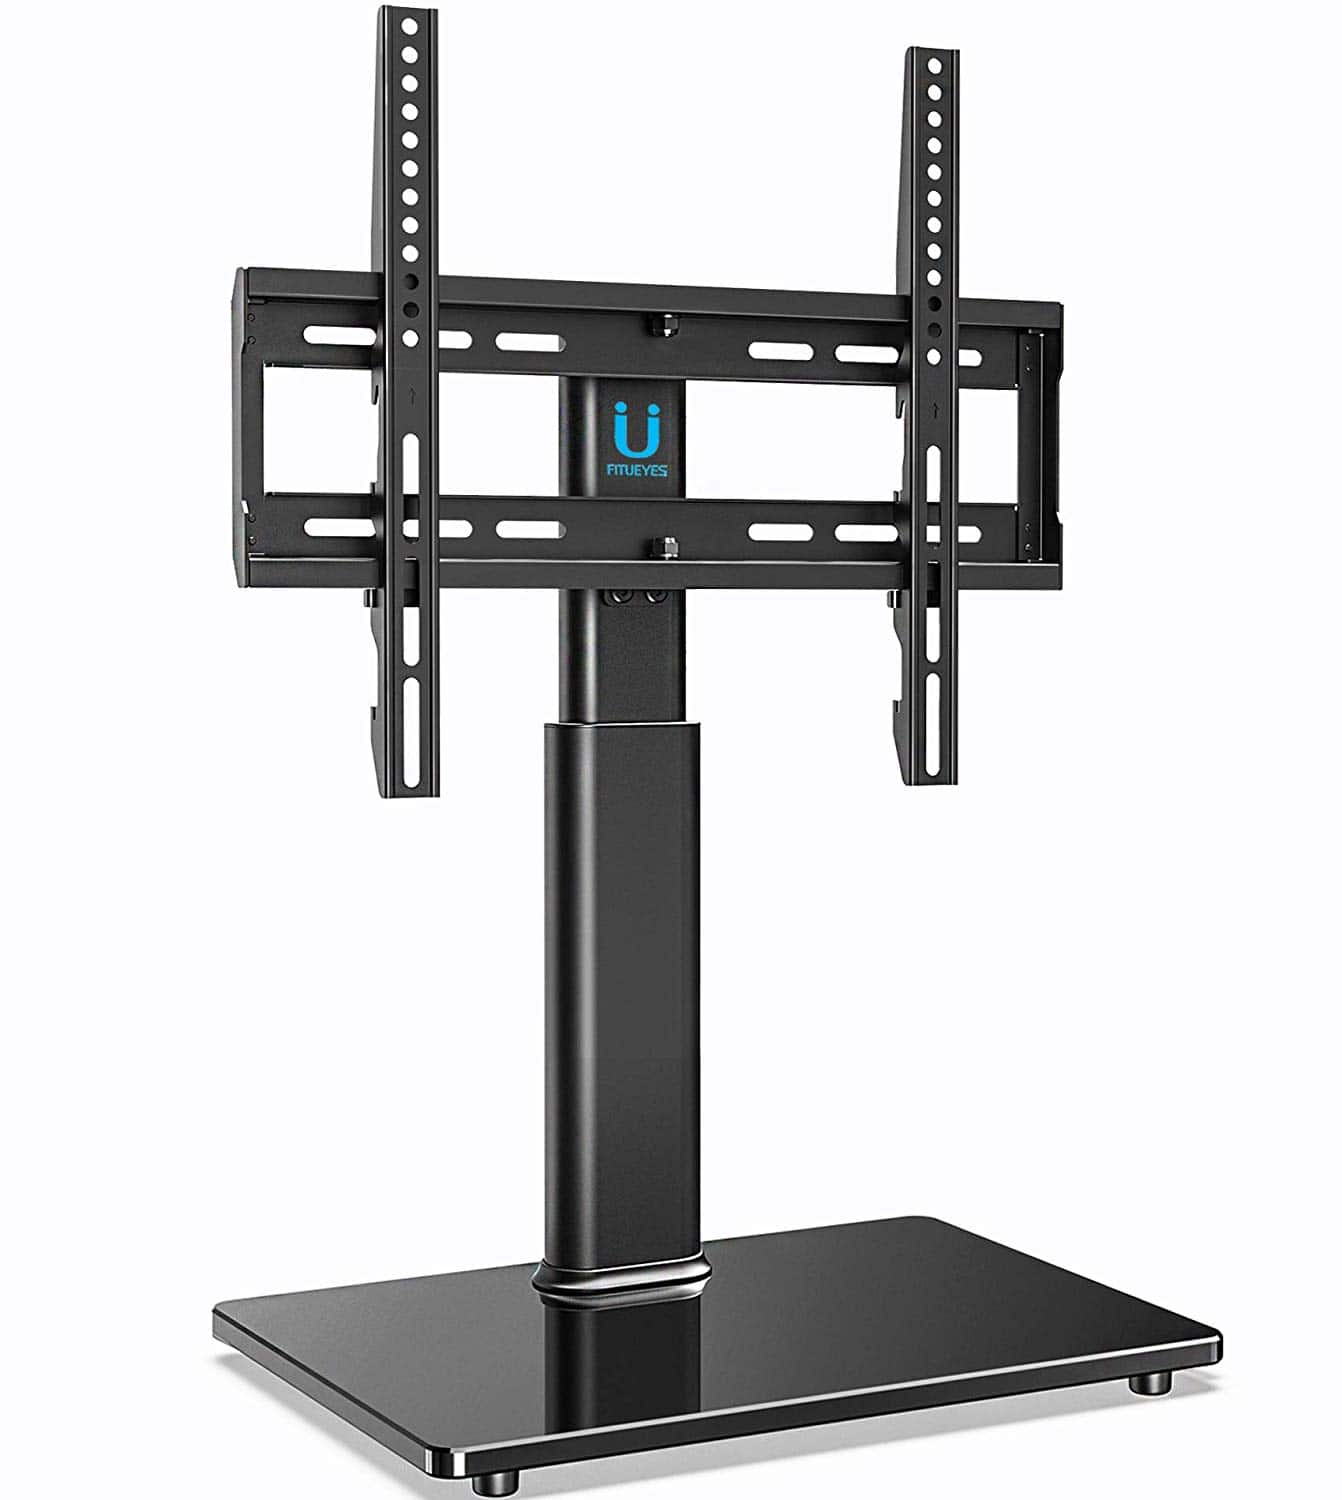 "Swivel Tabletop TV Stand Base with Mount for 32""-55"" TVs, holds up to 110lbs $29.59 + Free Shipping"